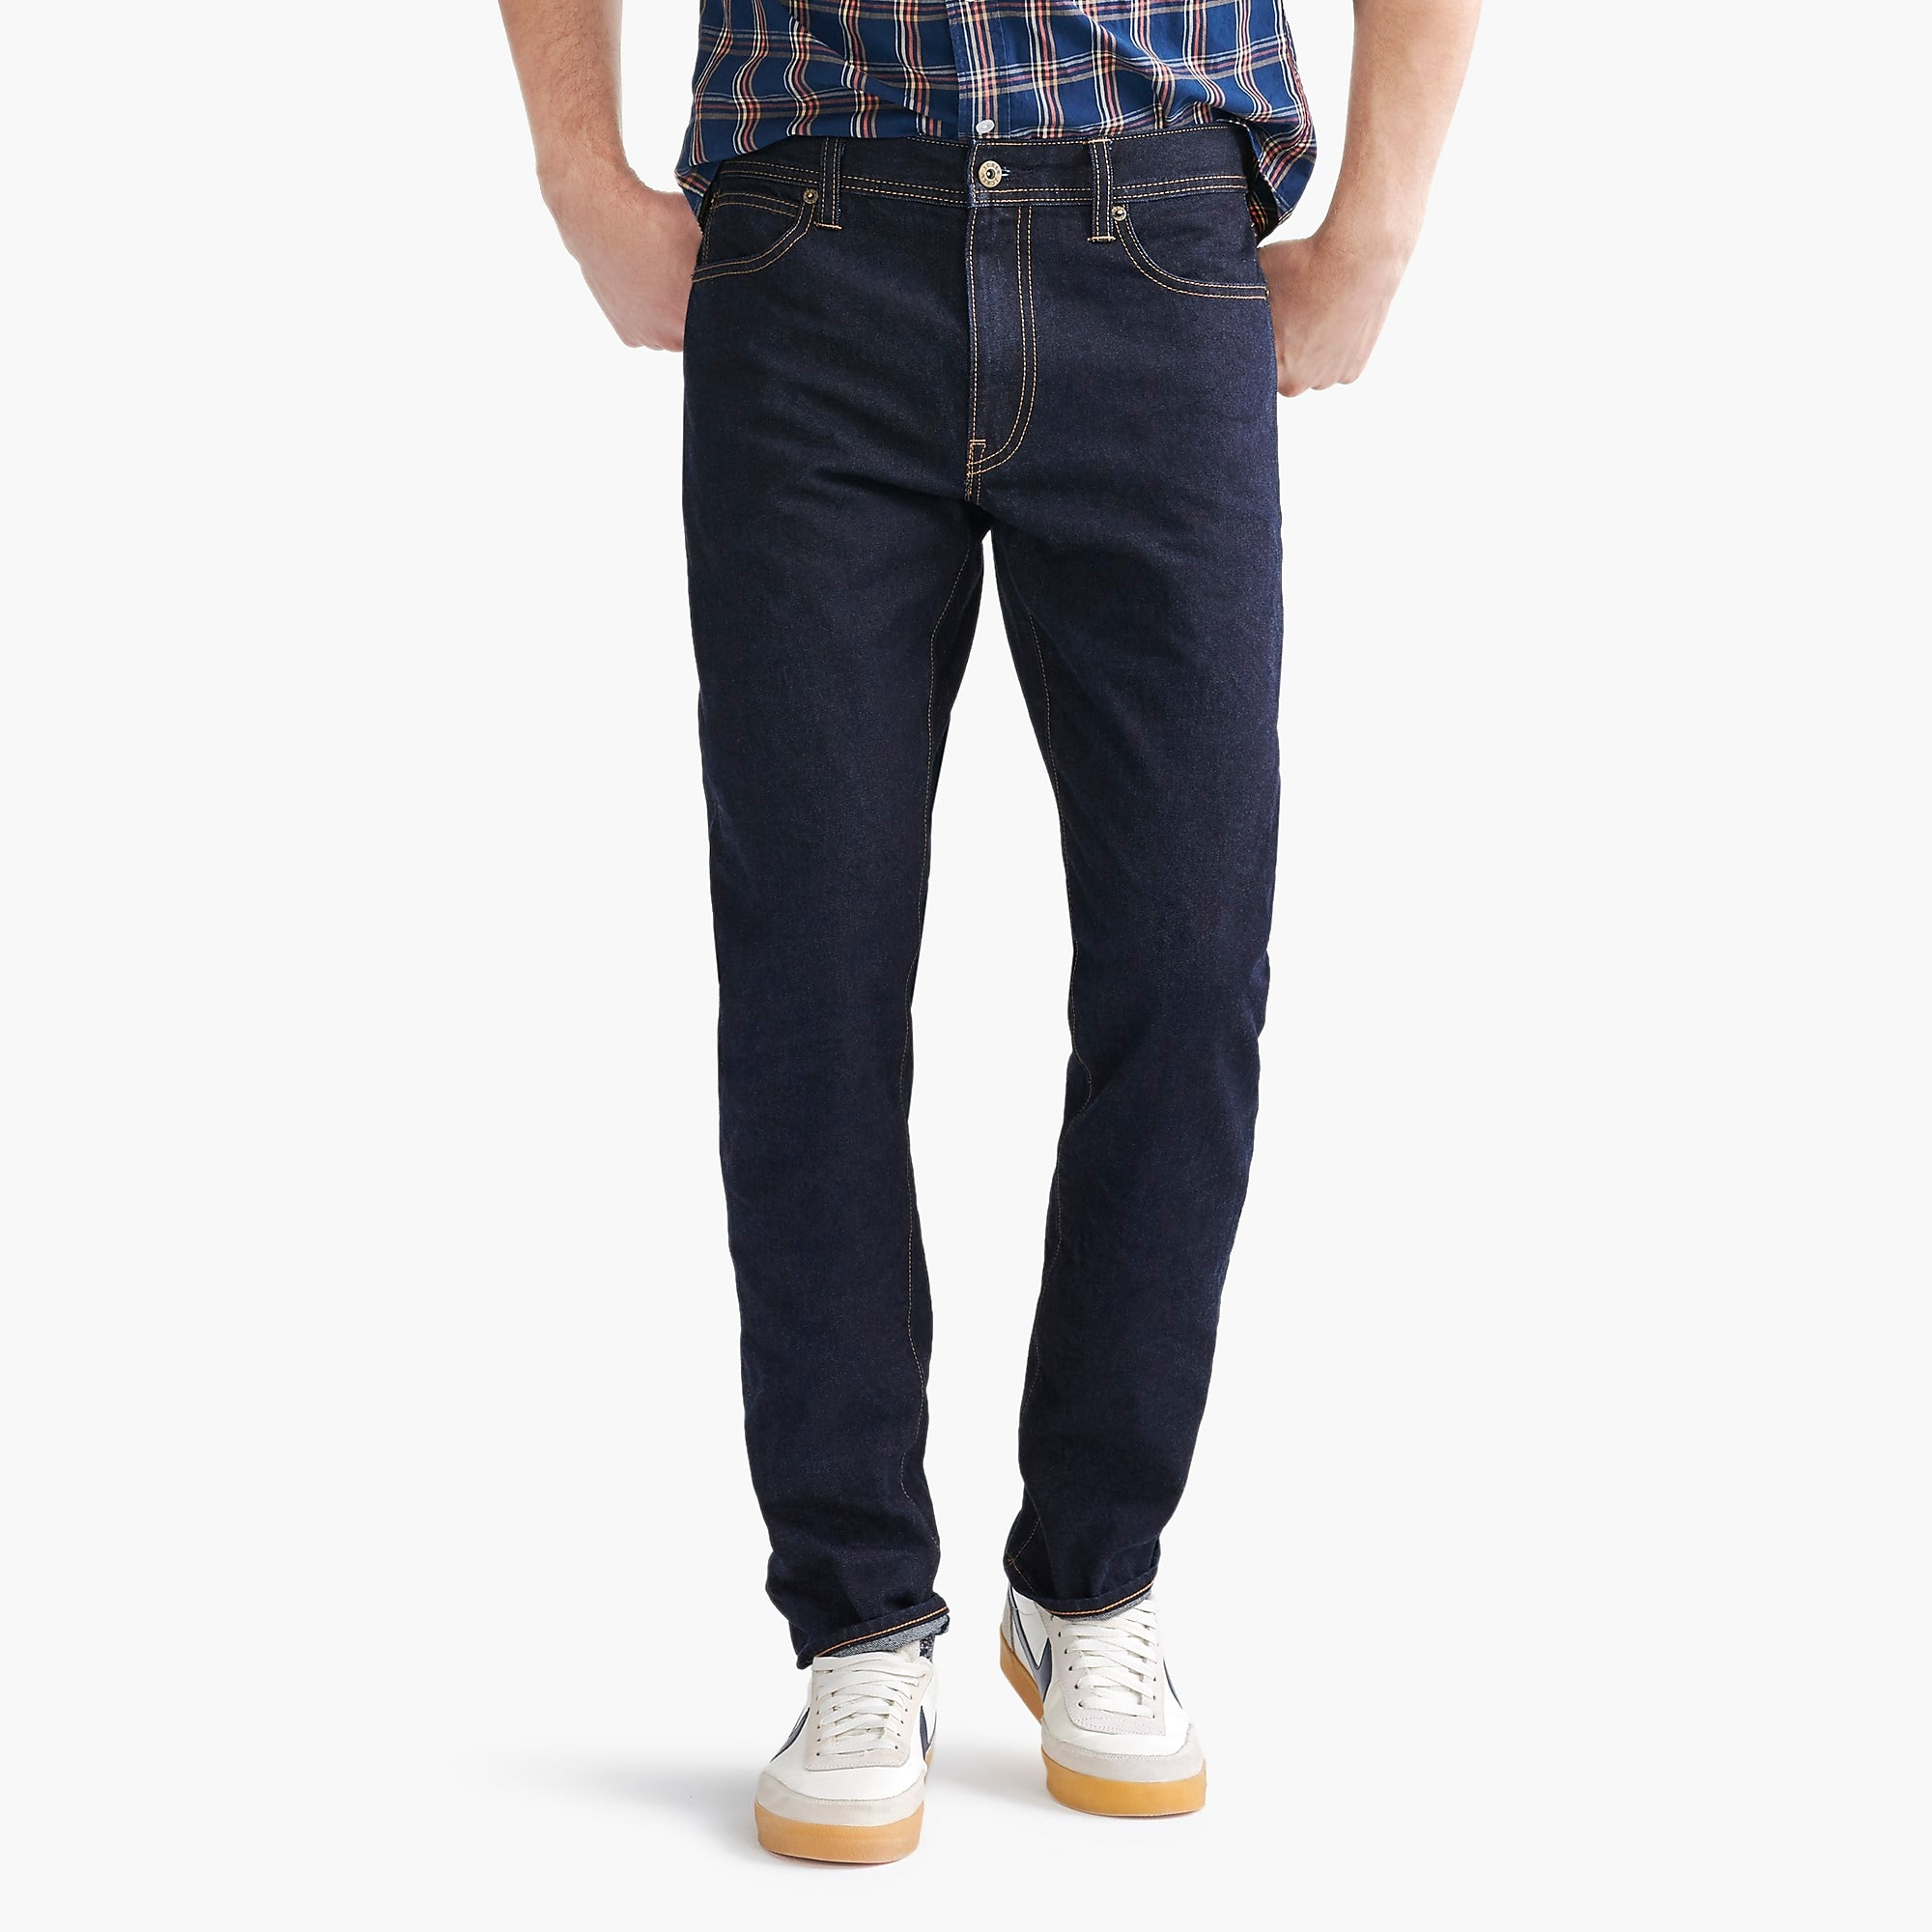 5b94857e1ade4a What is Selvedge Denim? Everything You Need to Know | Dapper ...